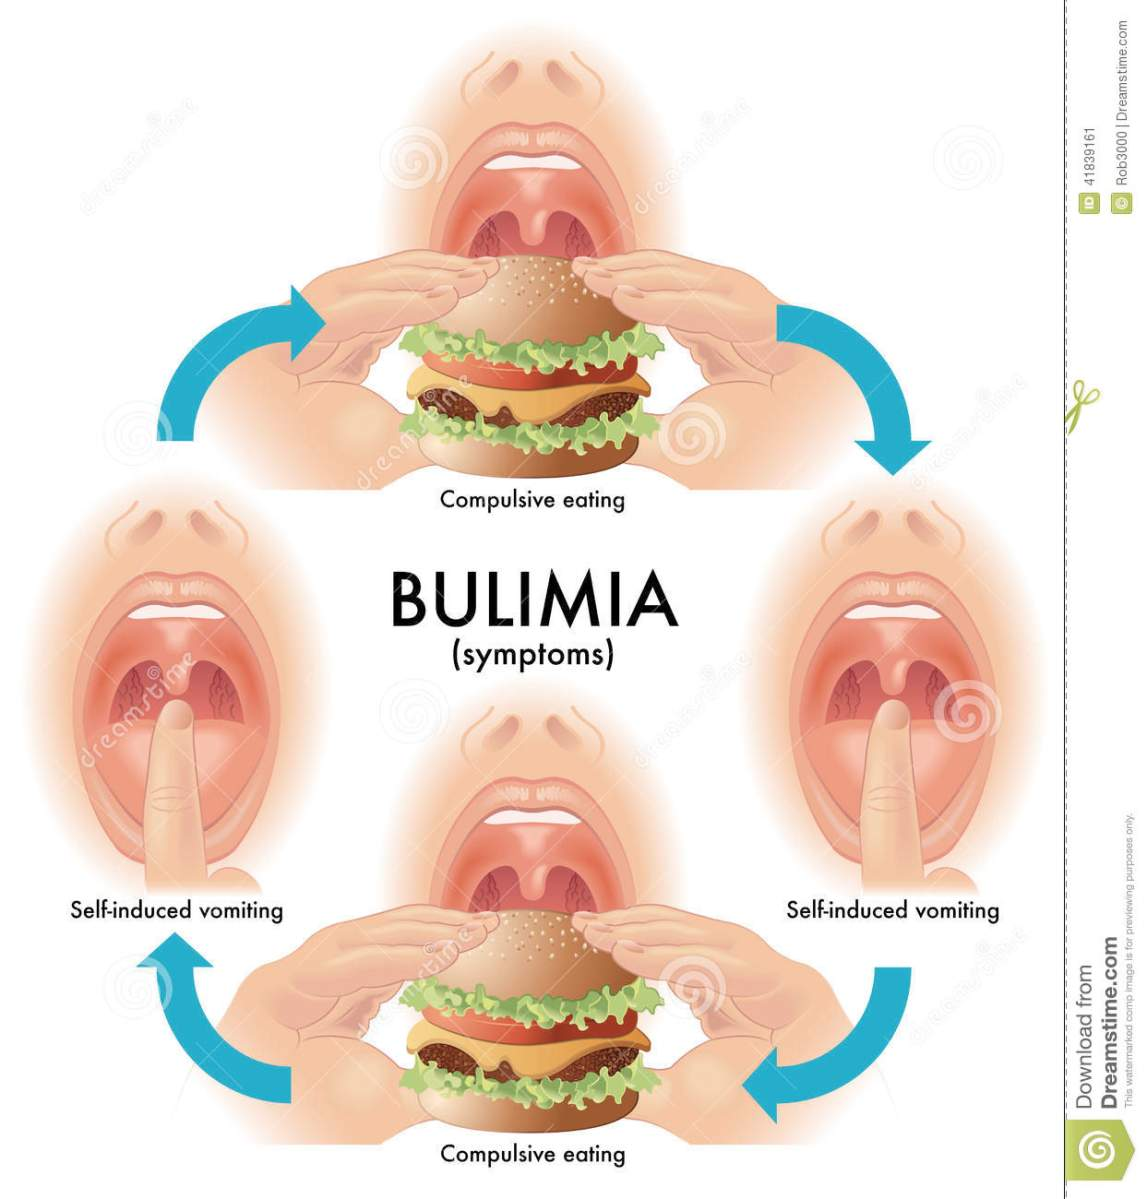 bulimia nervosa Definition bulimia nervosa is an intense preoccupation with body weight and shape, with regular episodes of uncontrolled overeating of large amounts of food (binge eating) associated with use of extreme methods to counteract the feared effects of overeating.